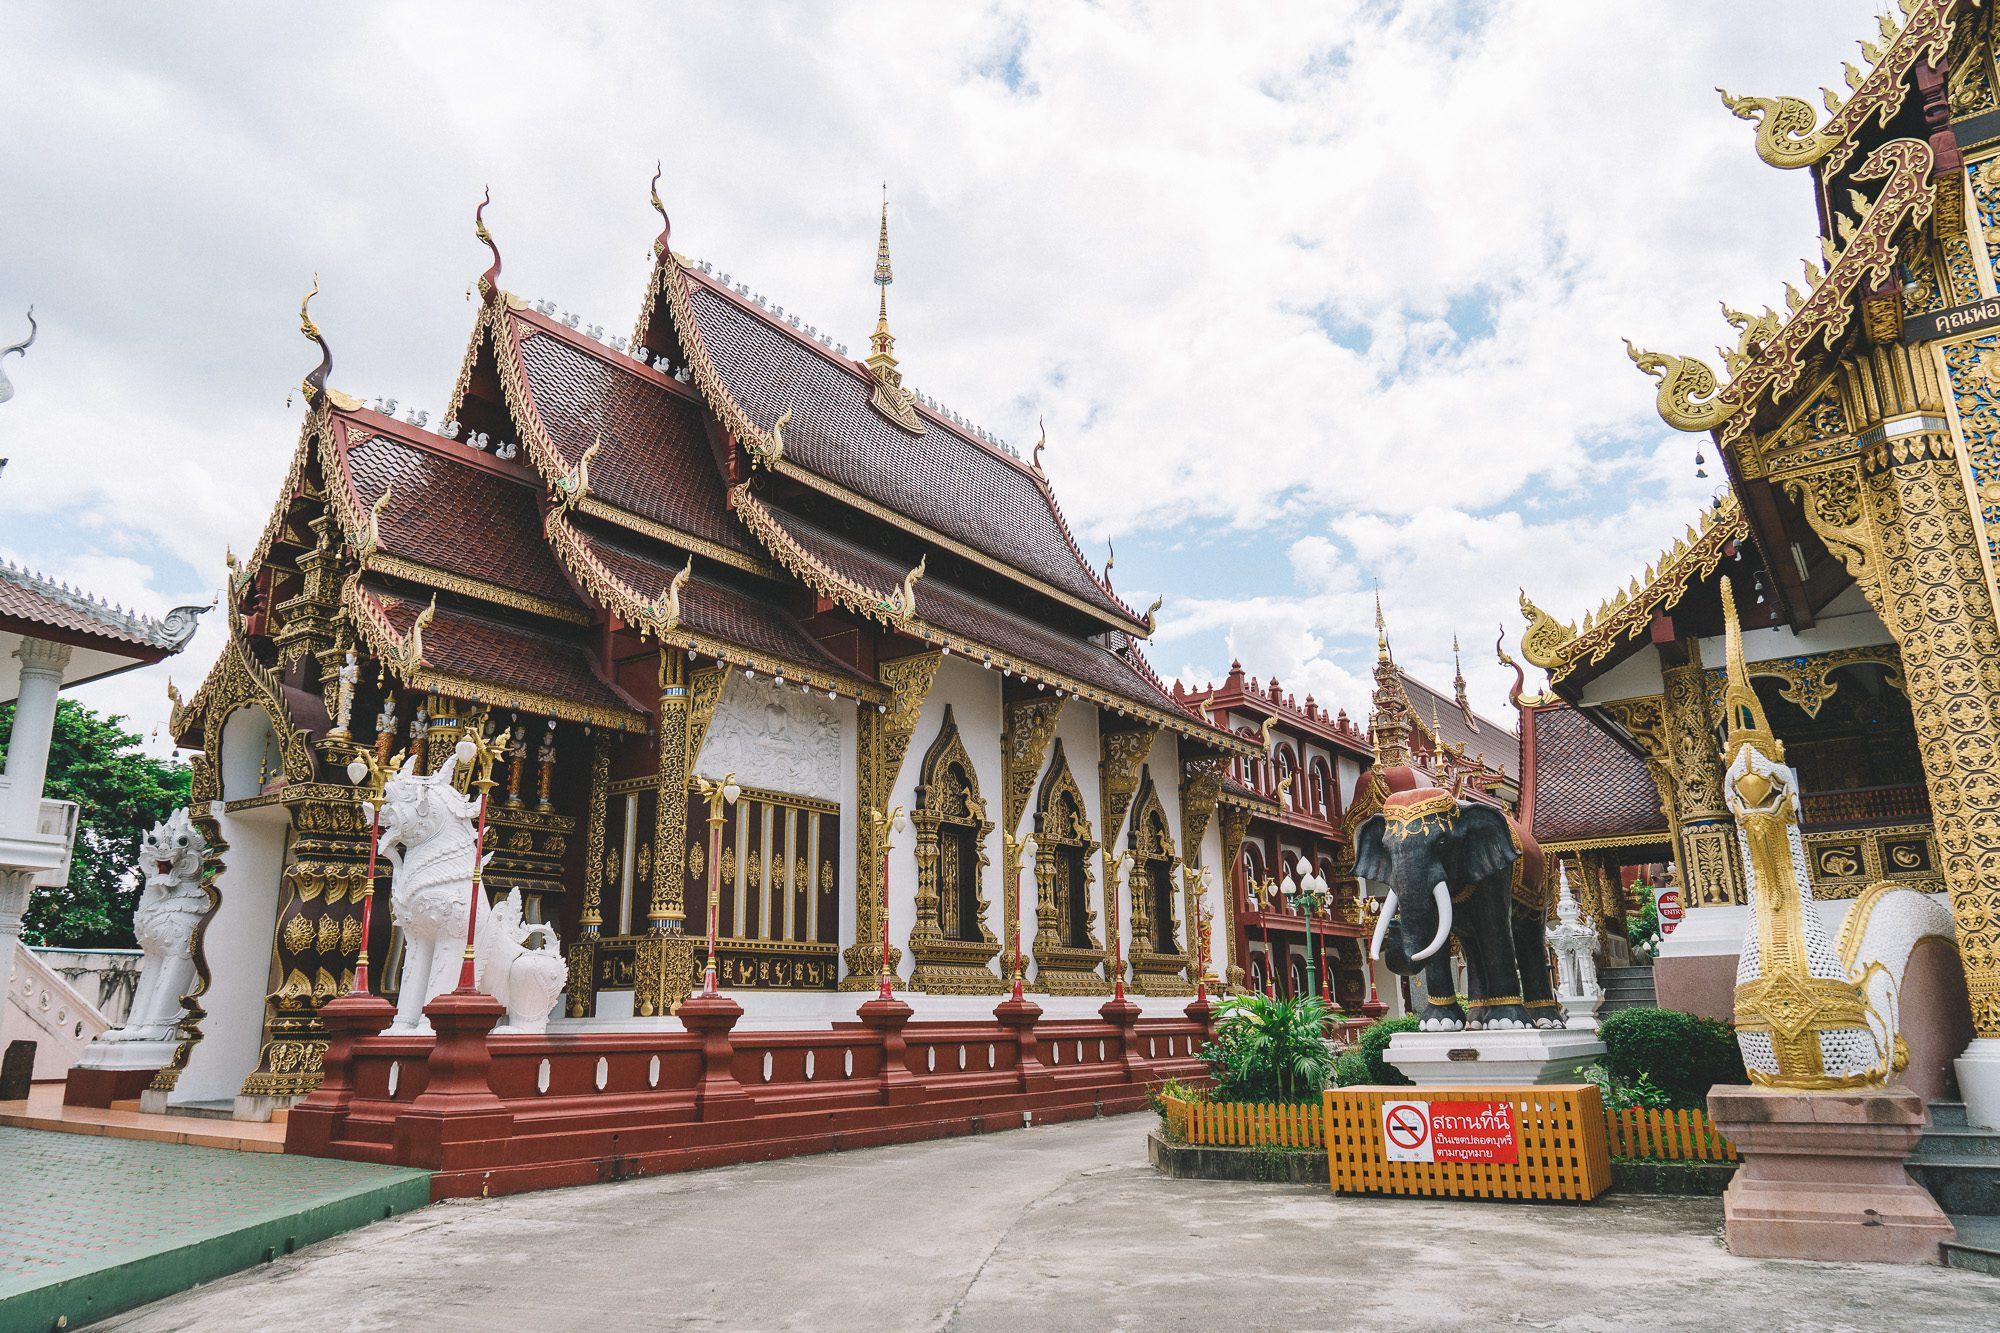 Schöne Tempel in Chiang Mai Old Town | culinary pixel